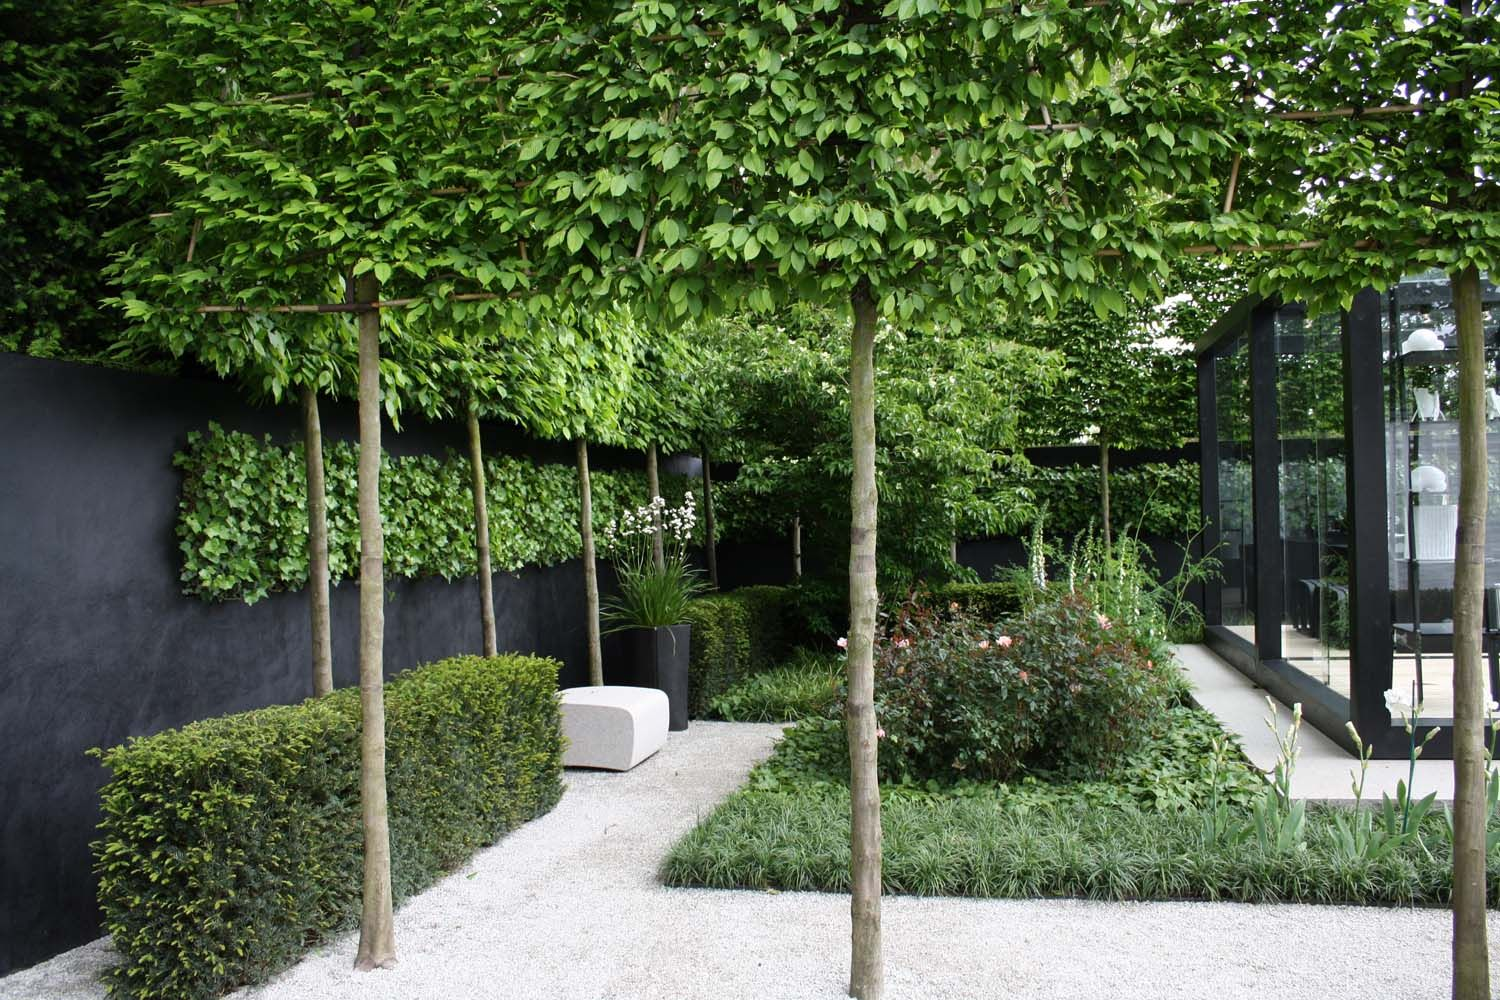 pleached trees at rhs chelsea flower show green thumb pinterest gardens chelsea flower and garden ideas - Garden Design Trees